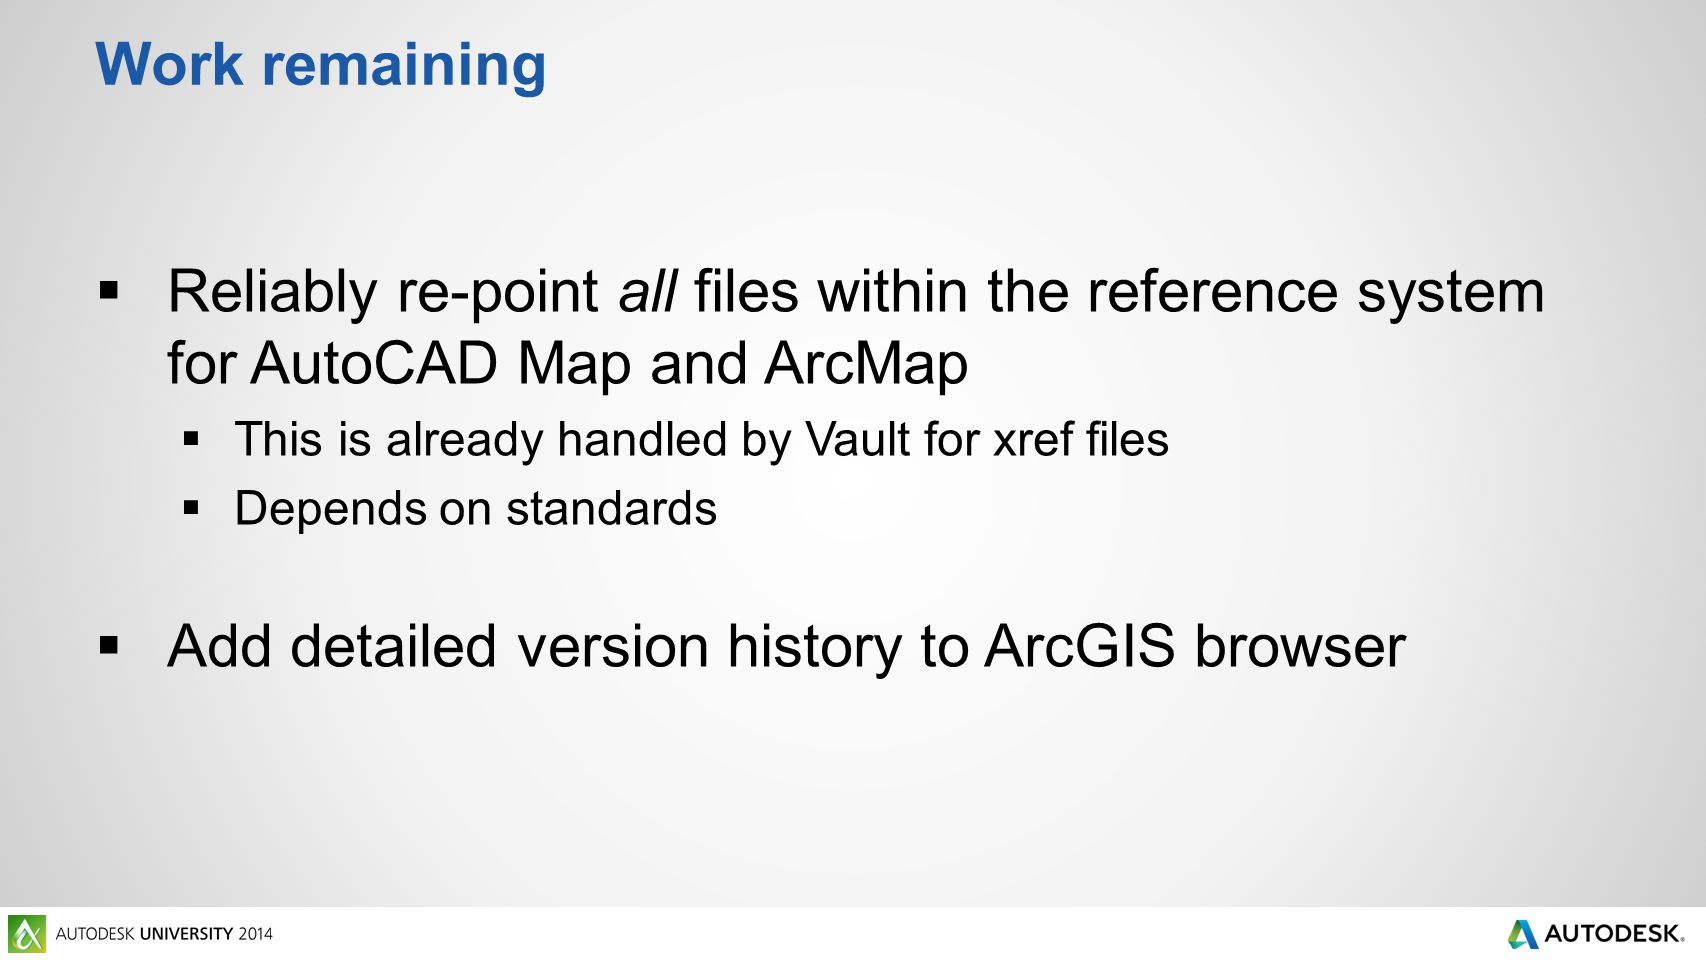 Work remaining  Reliably re-point all files within the reference system for AutoCAD Map and ArcMap  This is already handled by Vault for xref files  Depends on standards  Add detailed version history to ArcGIS browser